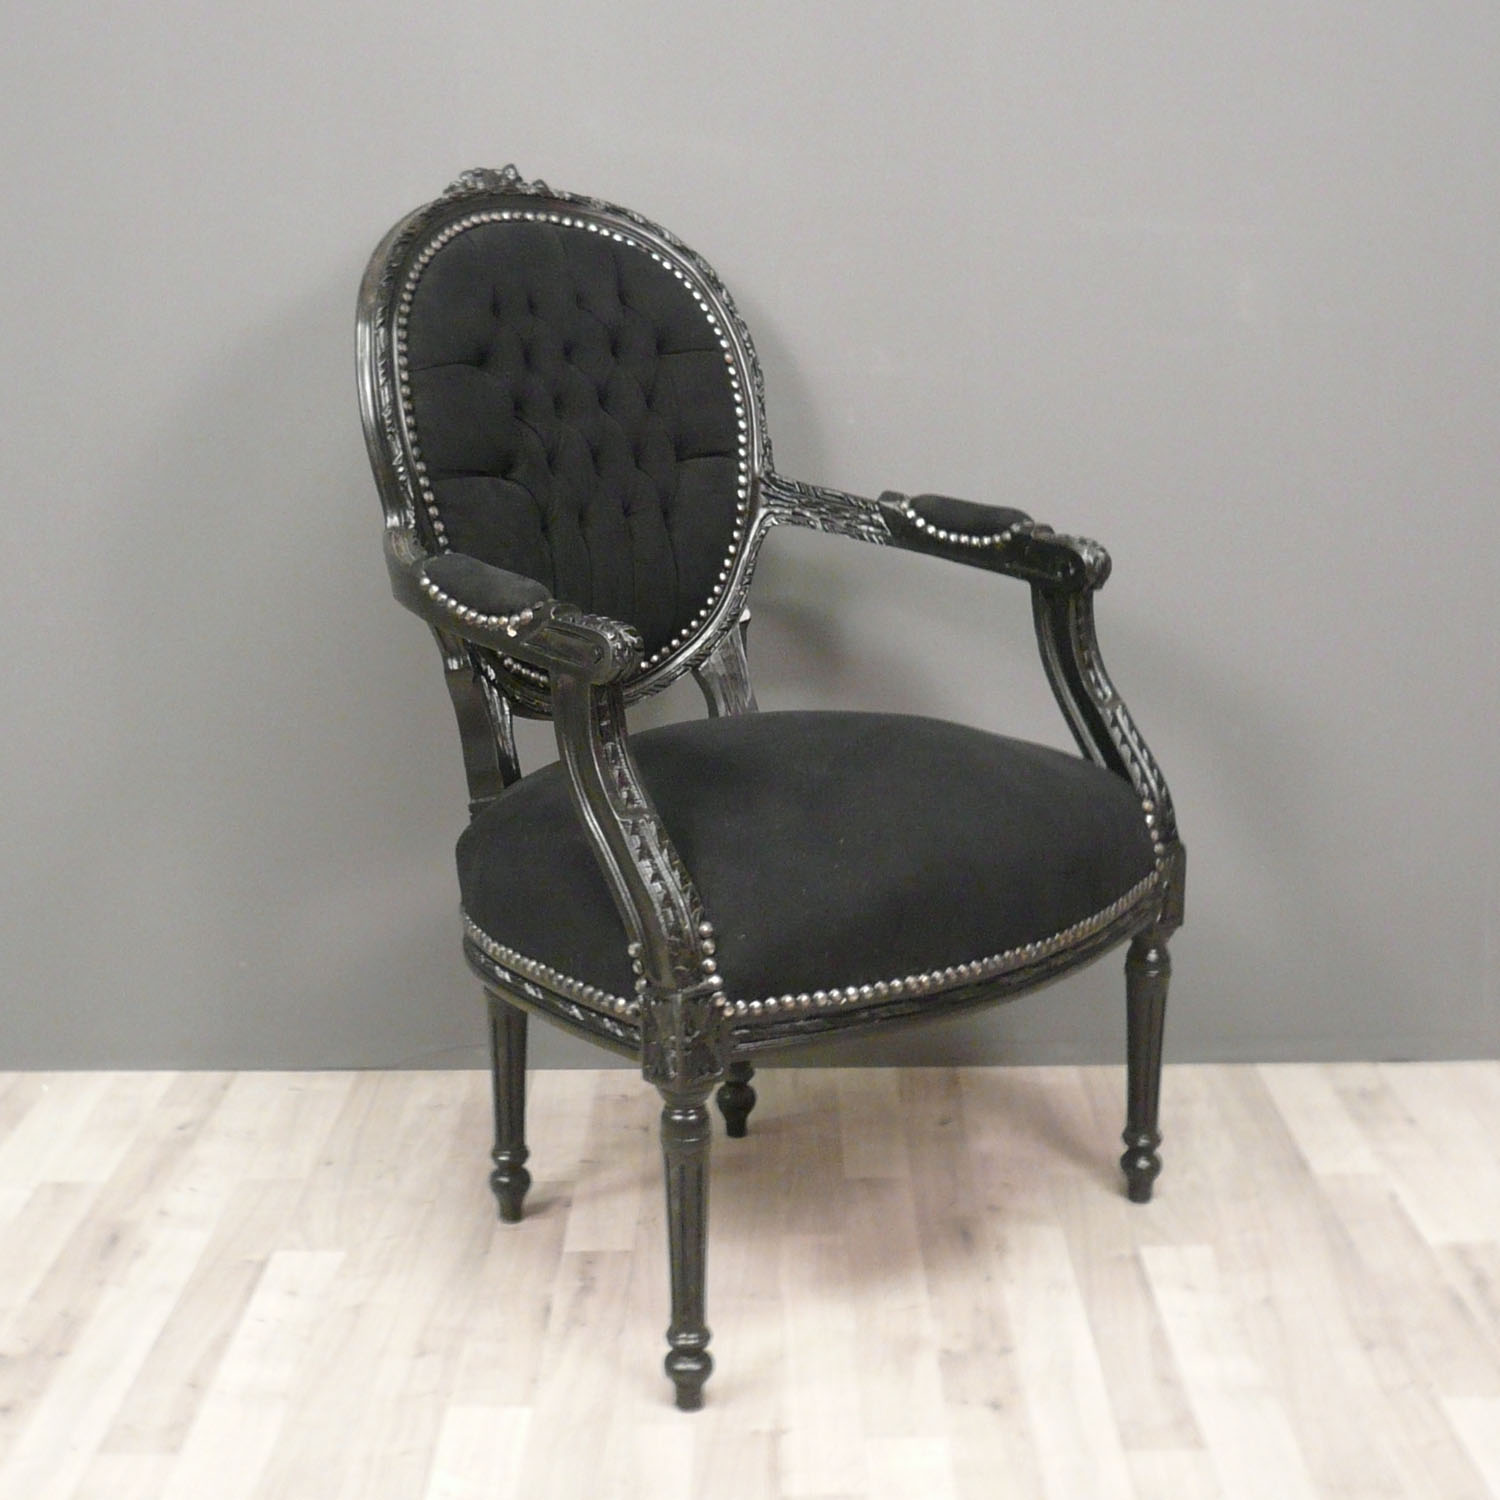 fauteuil louis xvi de style baroque chaise. Black Bedroom Furniture Sets. Home Design Ideas